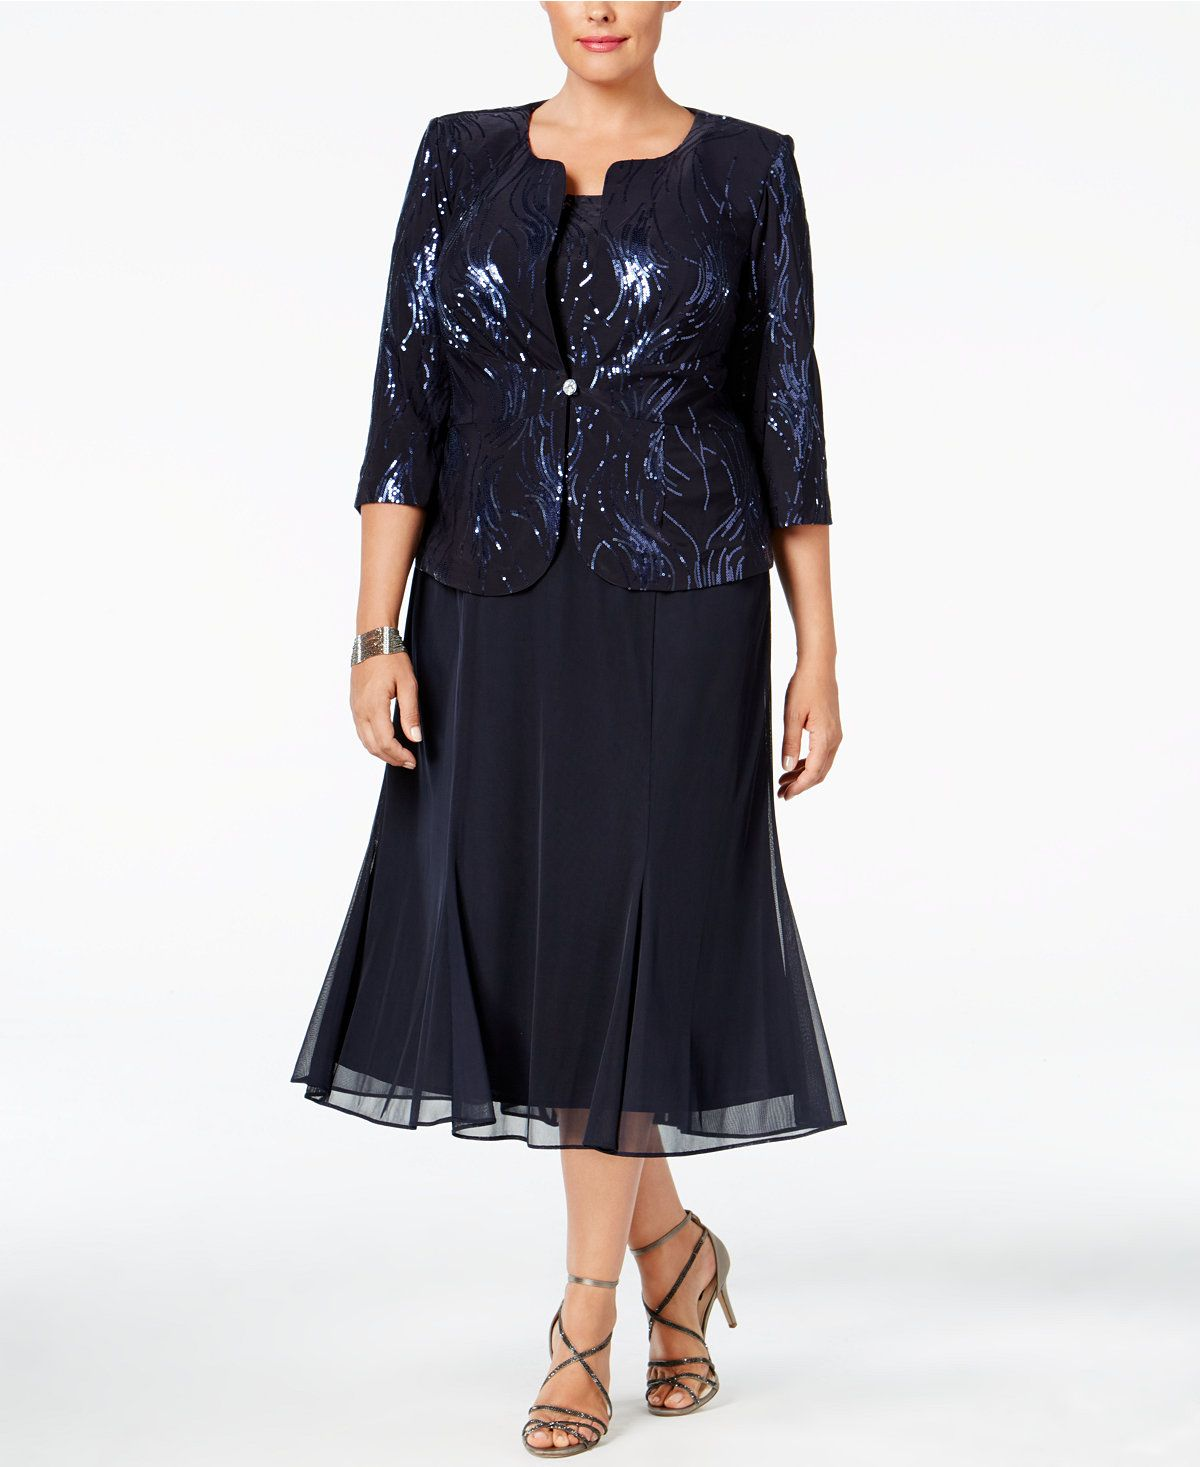 859e95b106422 Alex Evenings Plus Size Sequined Chiffon Dress and Jacket - Dresses - Women  - Macy s